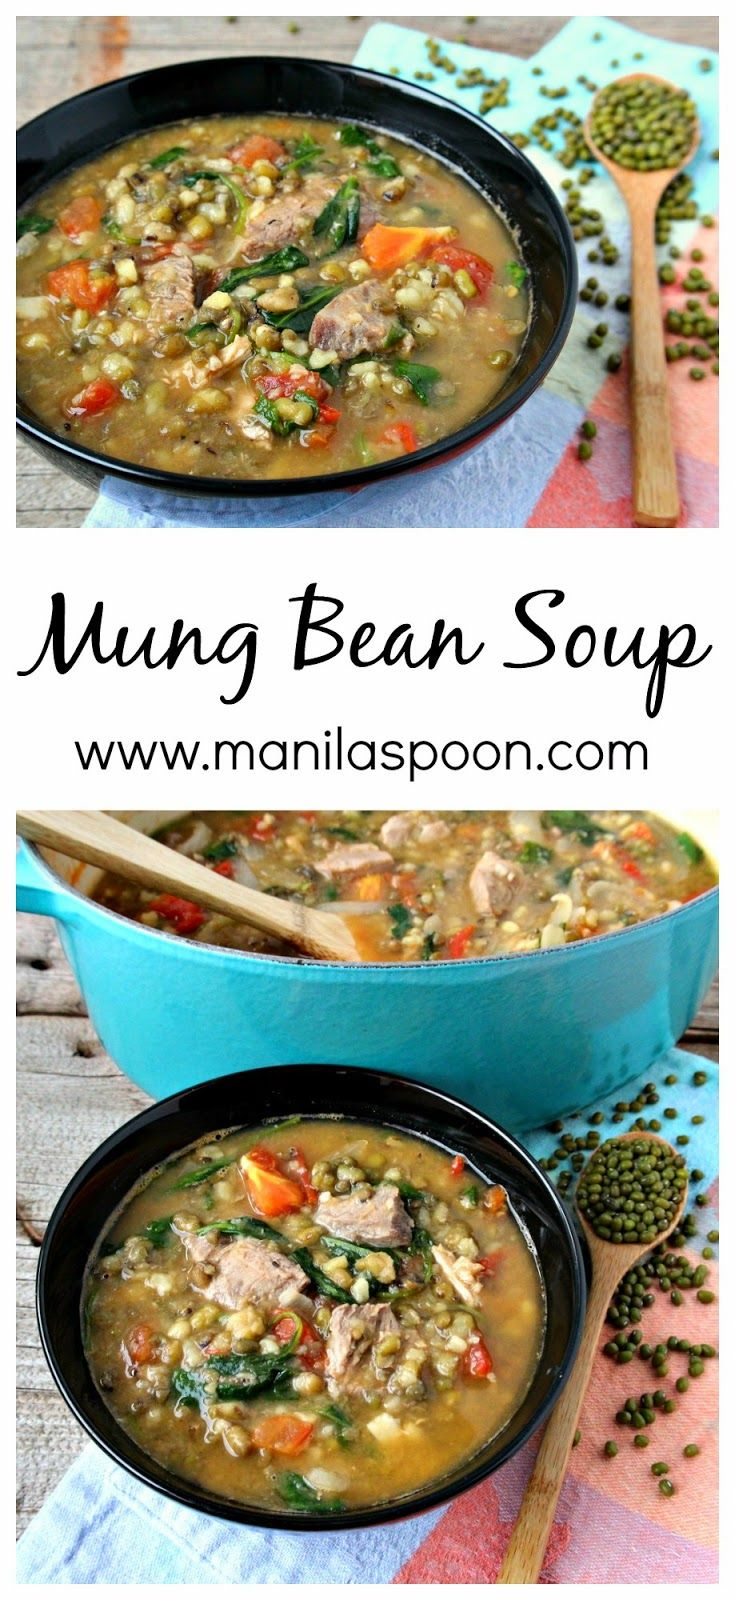 With mung beans, spinach, tomatoes and meat this hearty and healthy soup is filling and delicious! Freezable, too. #munggo Mung Bean Soup | manilaspoon.com